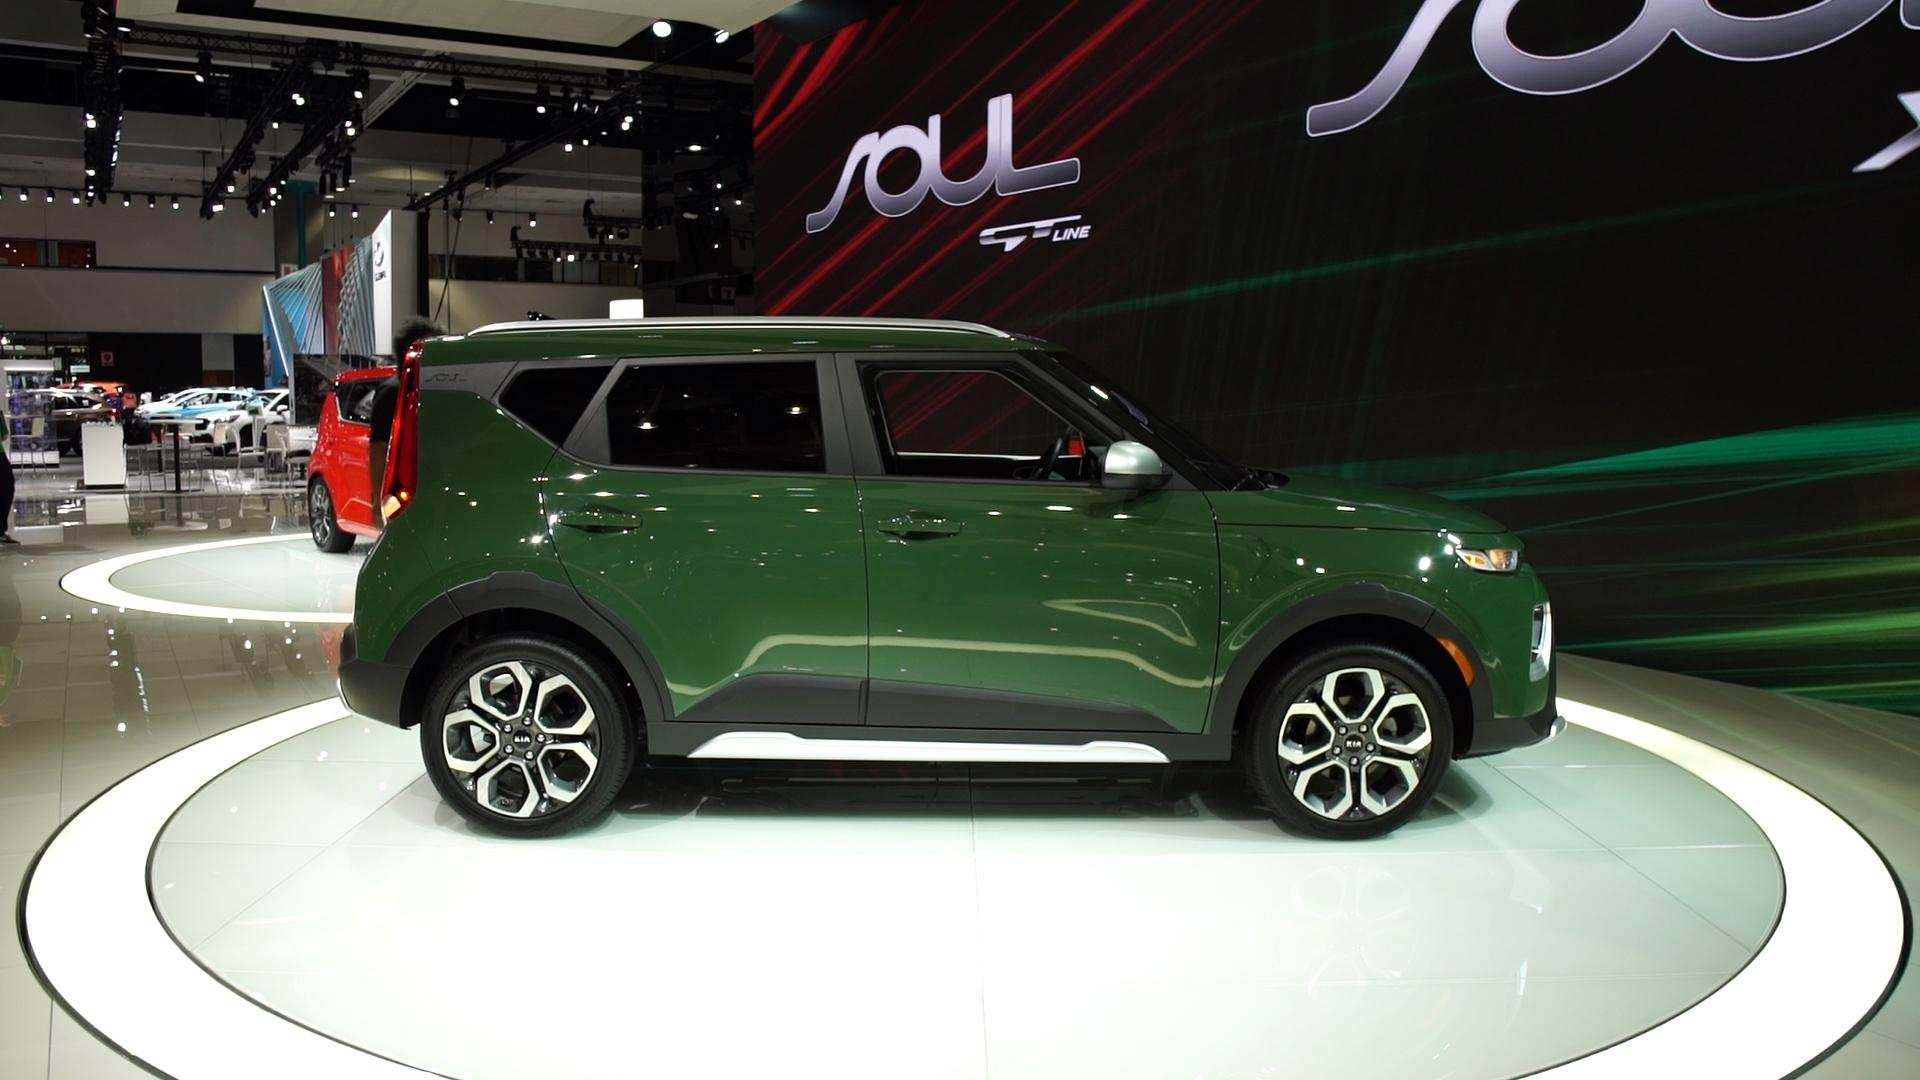 73 All New 2020 Kia Soul Horsepower Pricing for 2020 Kia Soul Horsepower